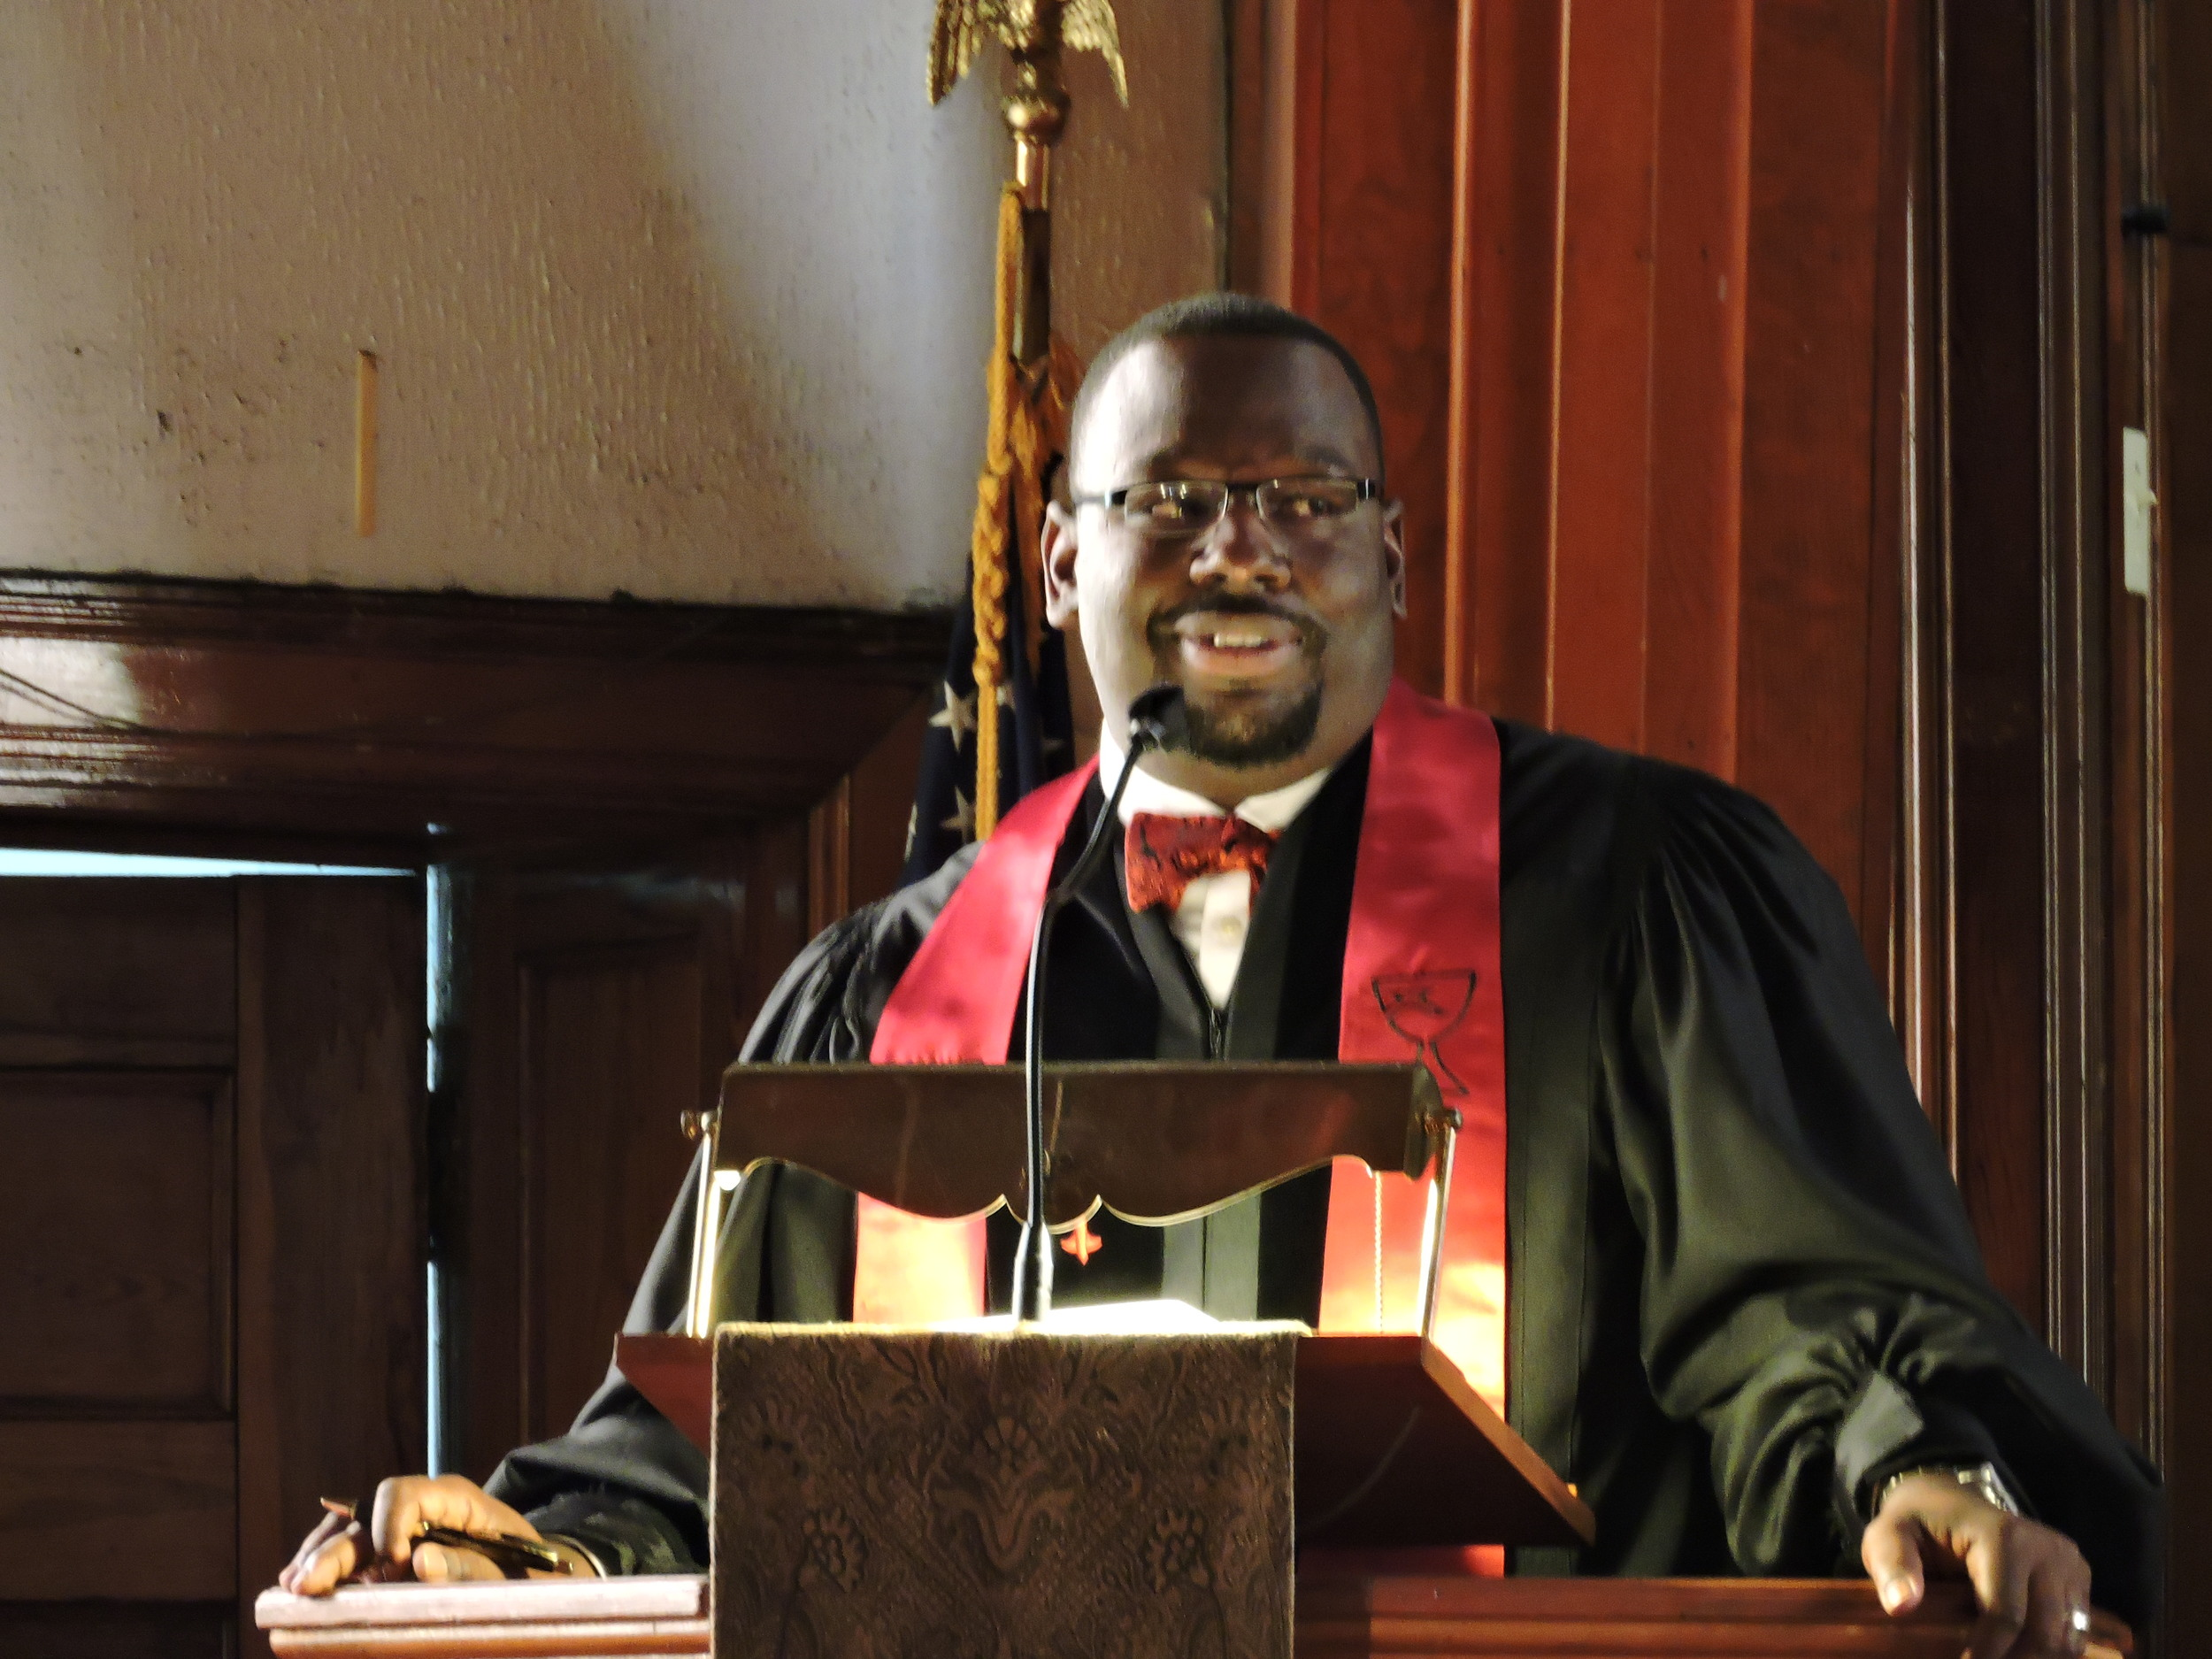 Host pastor of Centennial Christian Church Rev. Derrick Perkins